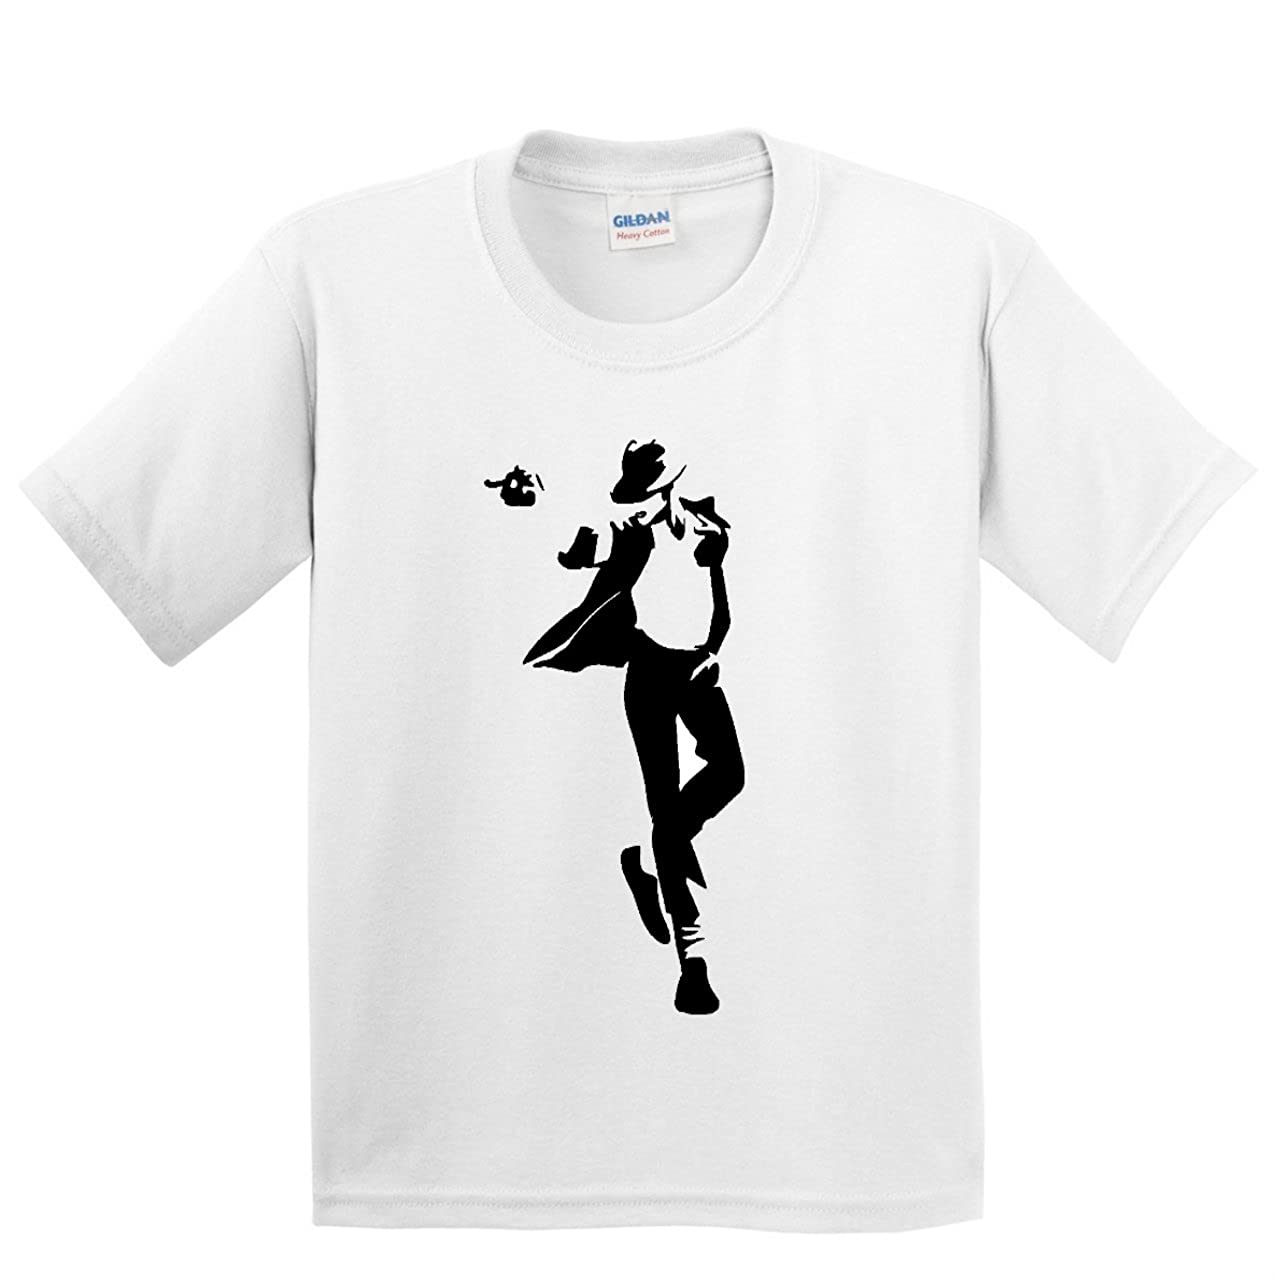 Born Cool Baby Michael Jackson Toddler Shirt